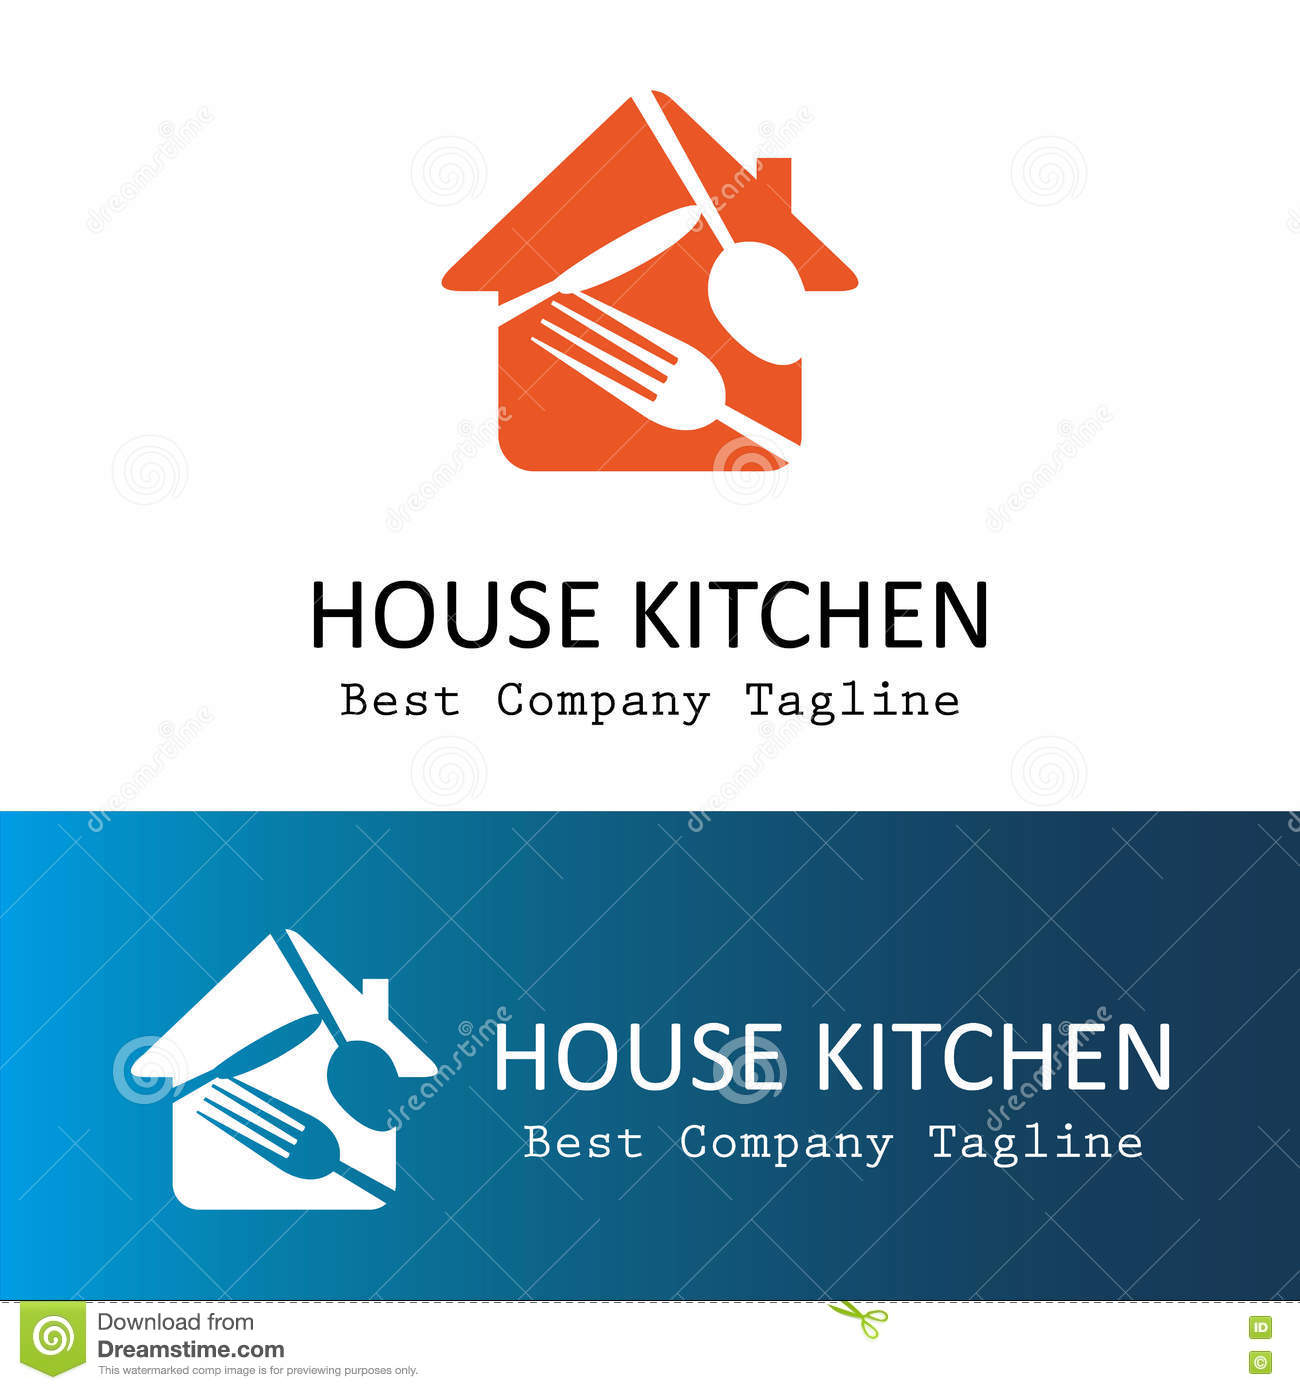 House kitchen logo stock vector. Illustration of cooking - 82245042